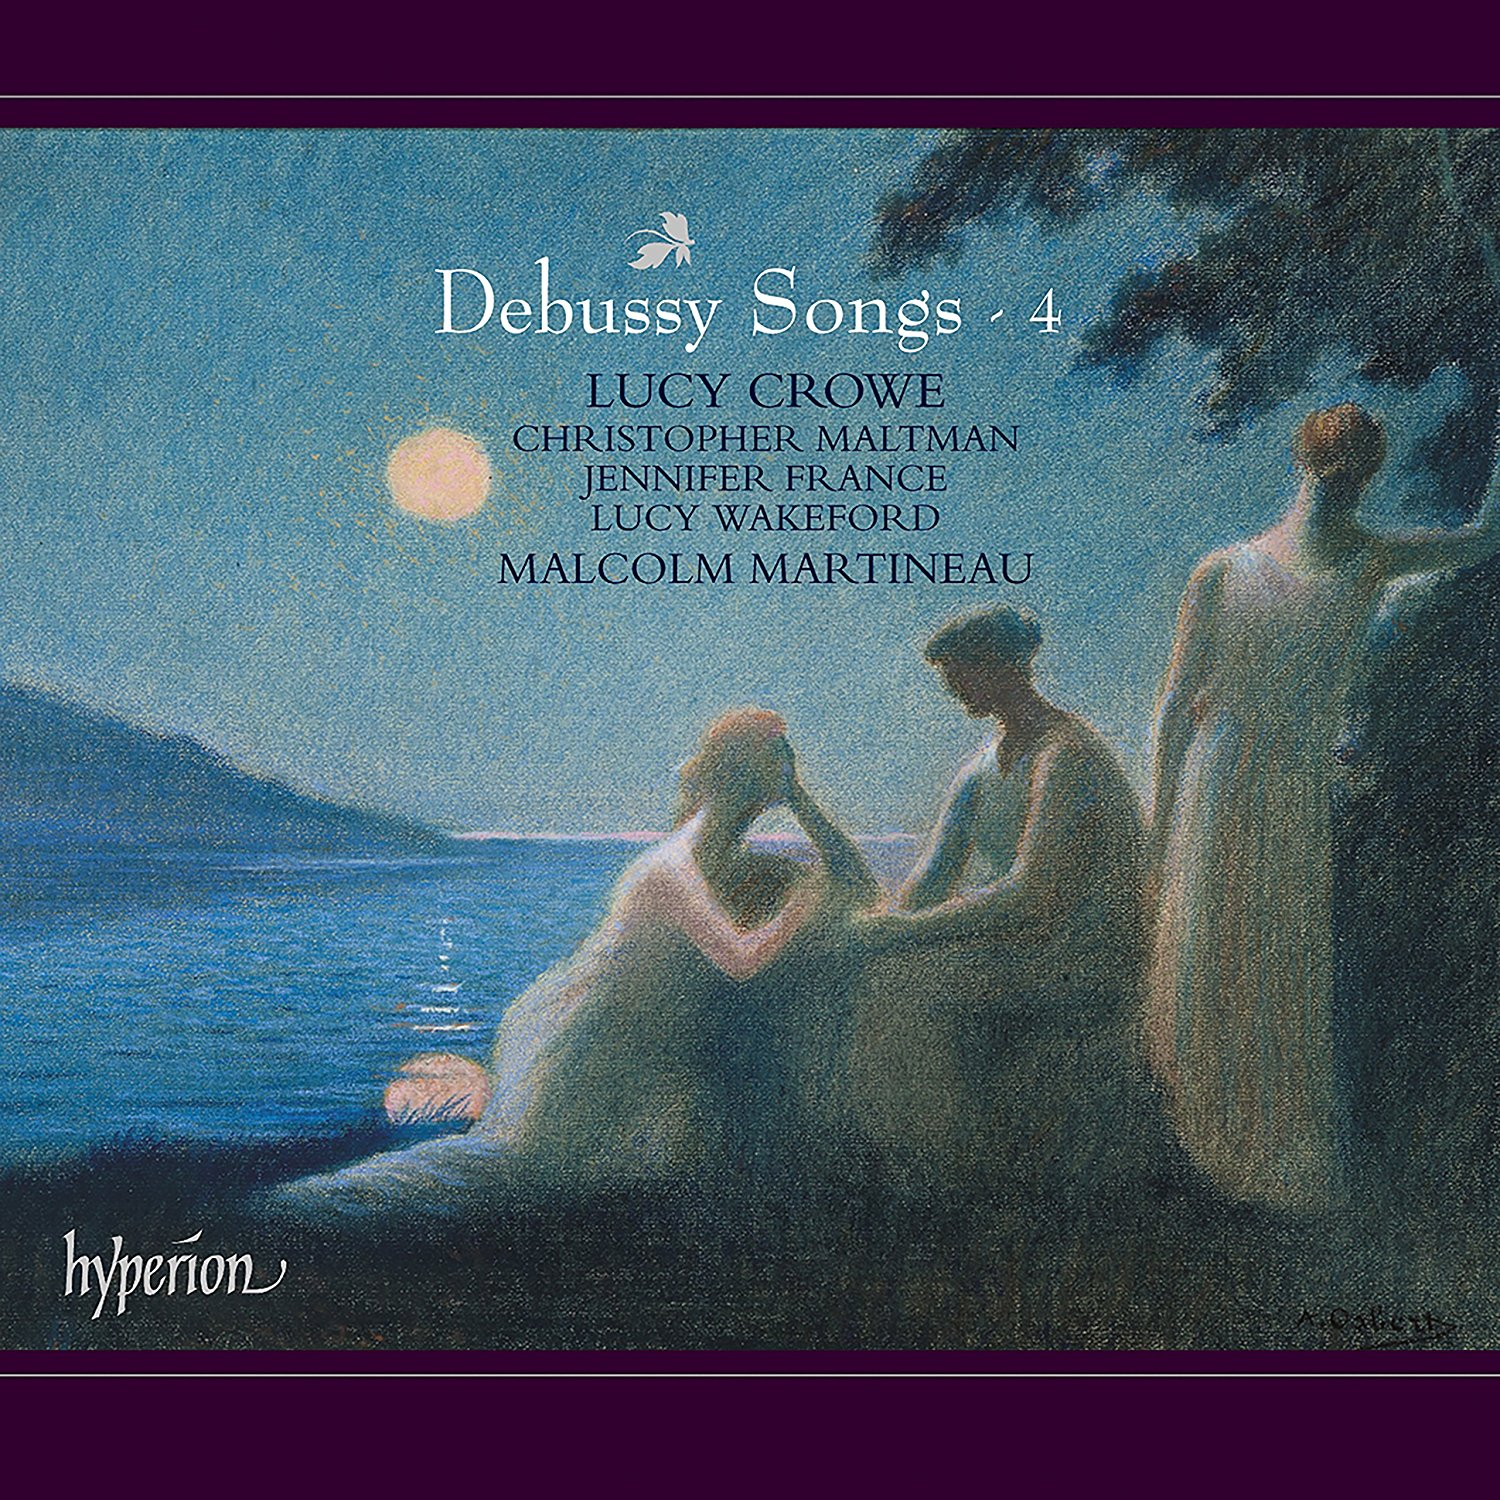 Debussy Songs, Hyperion